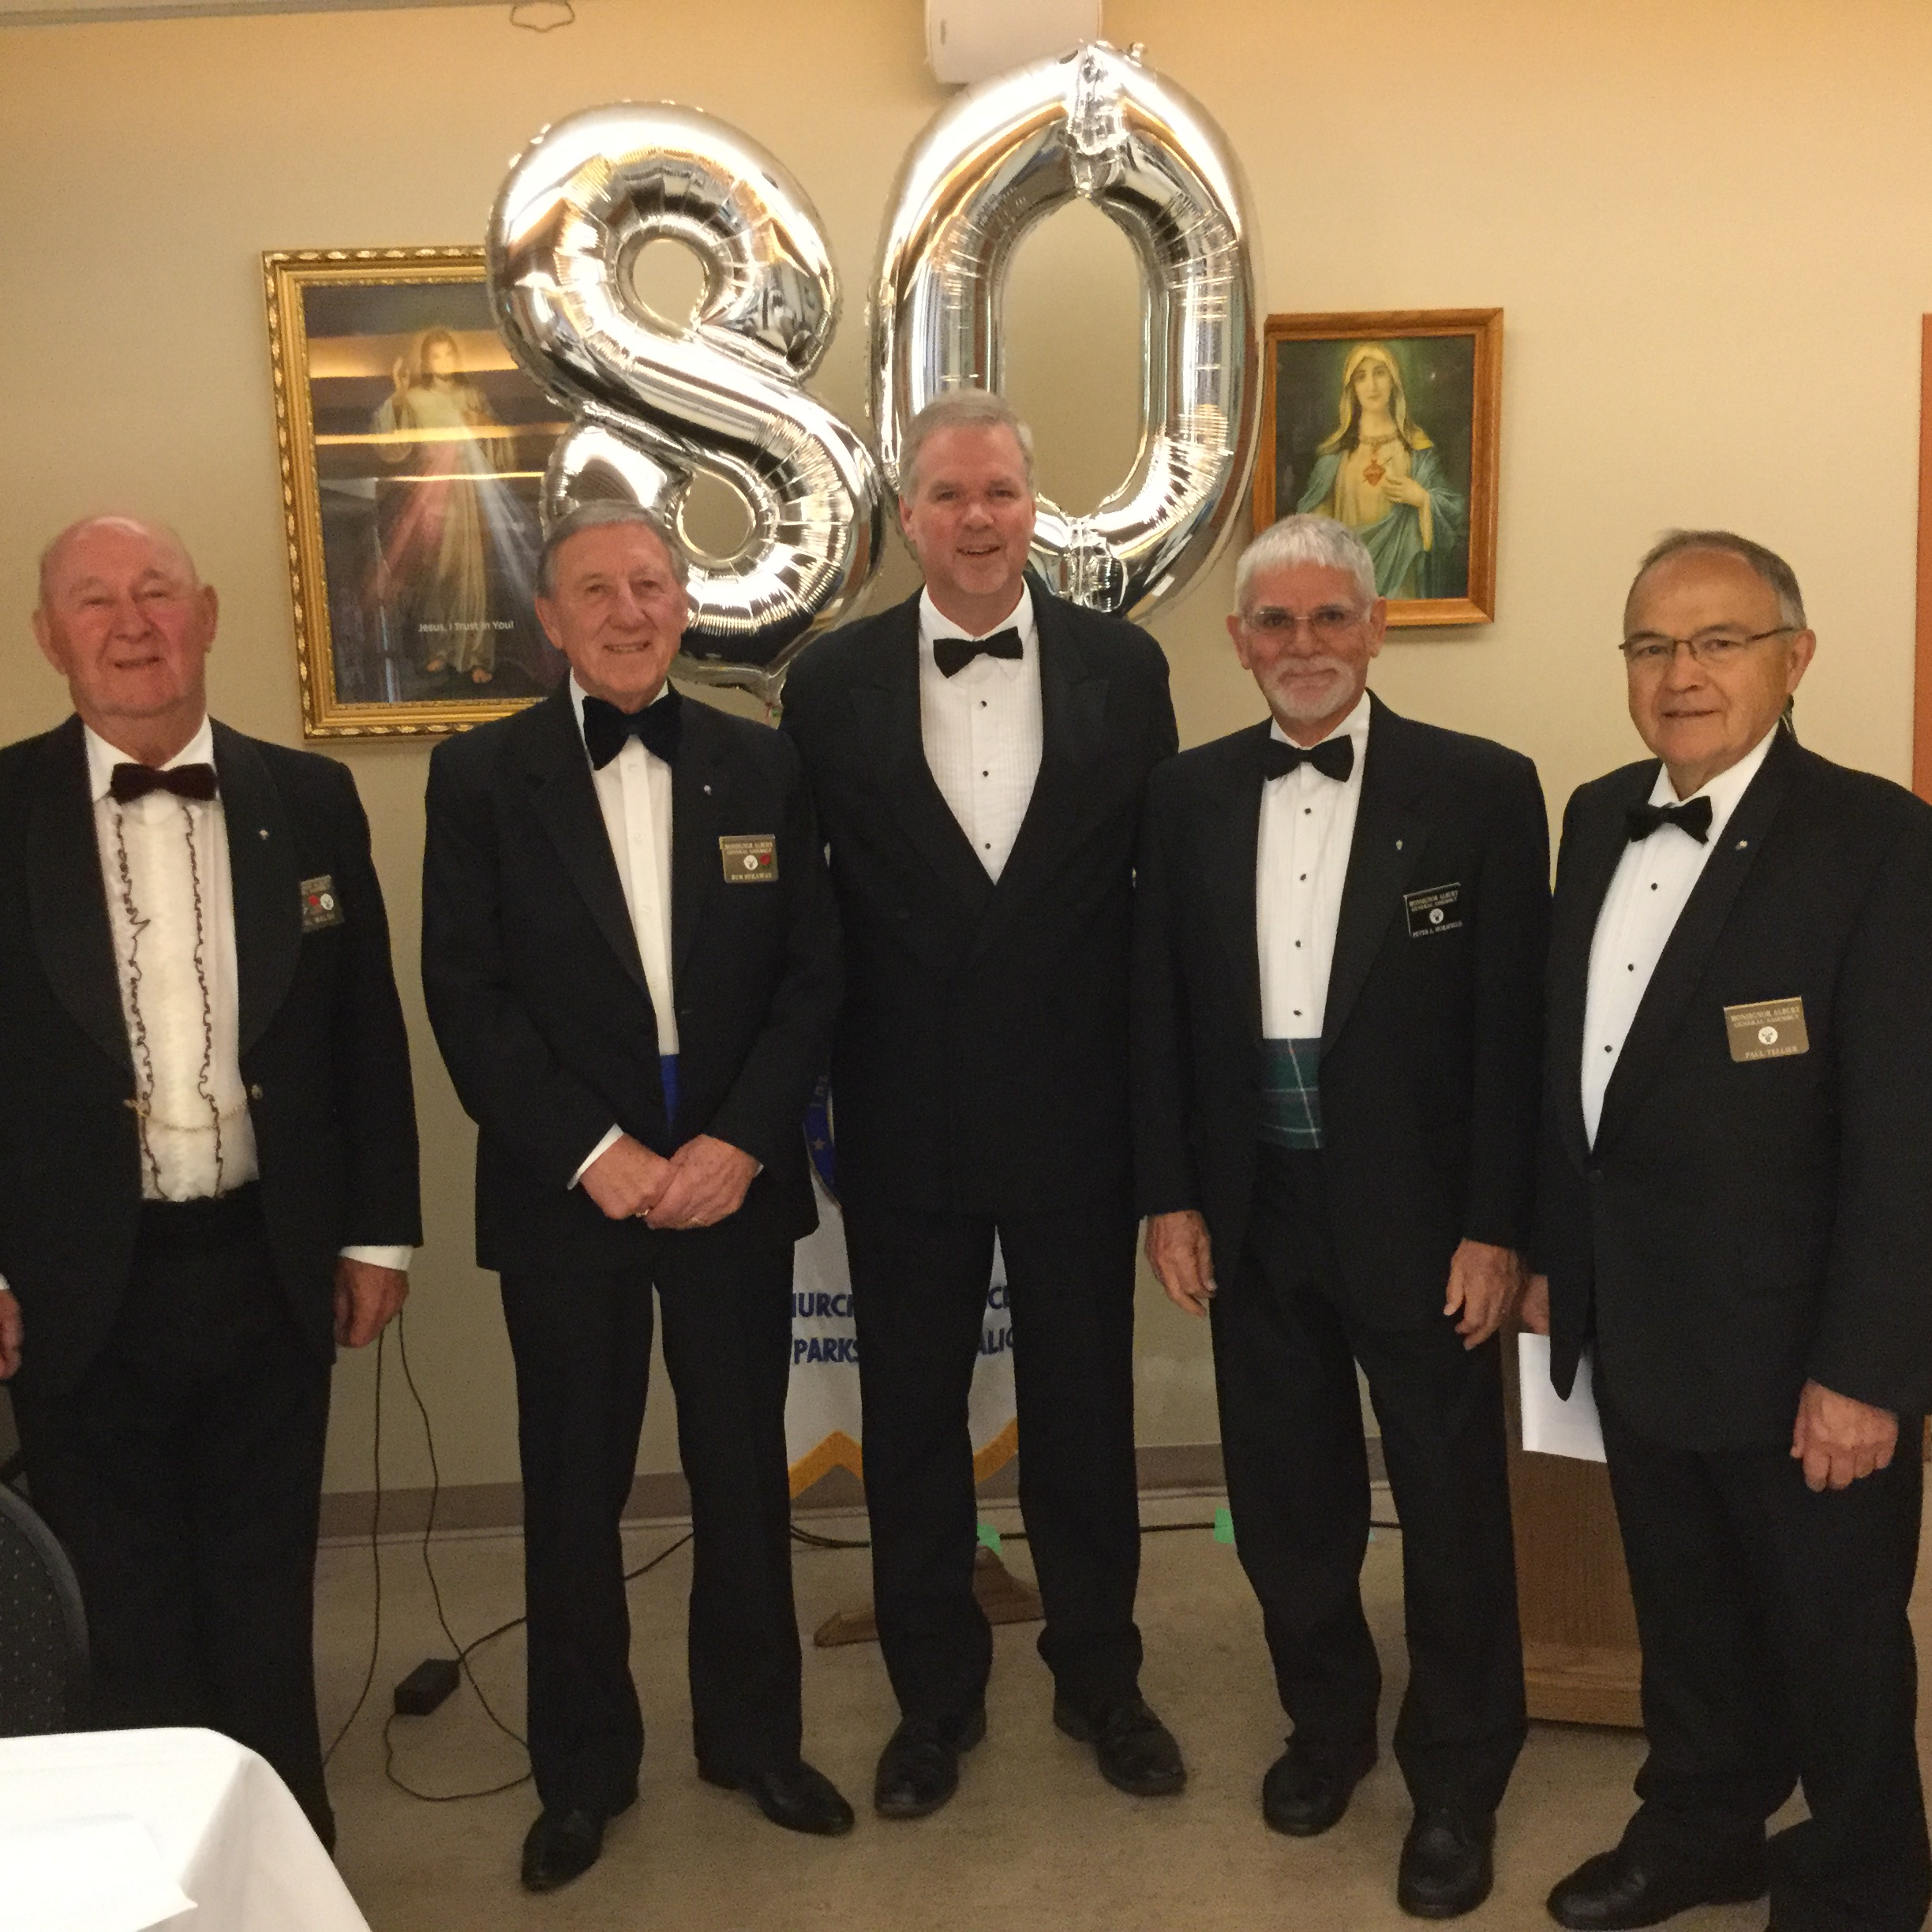 The Knights of Columbus were handsome escorts and servers